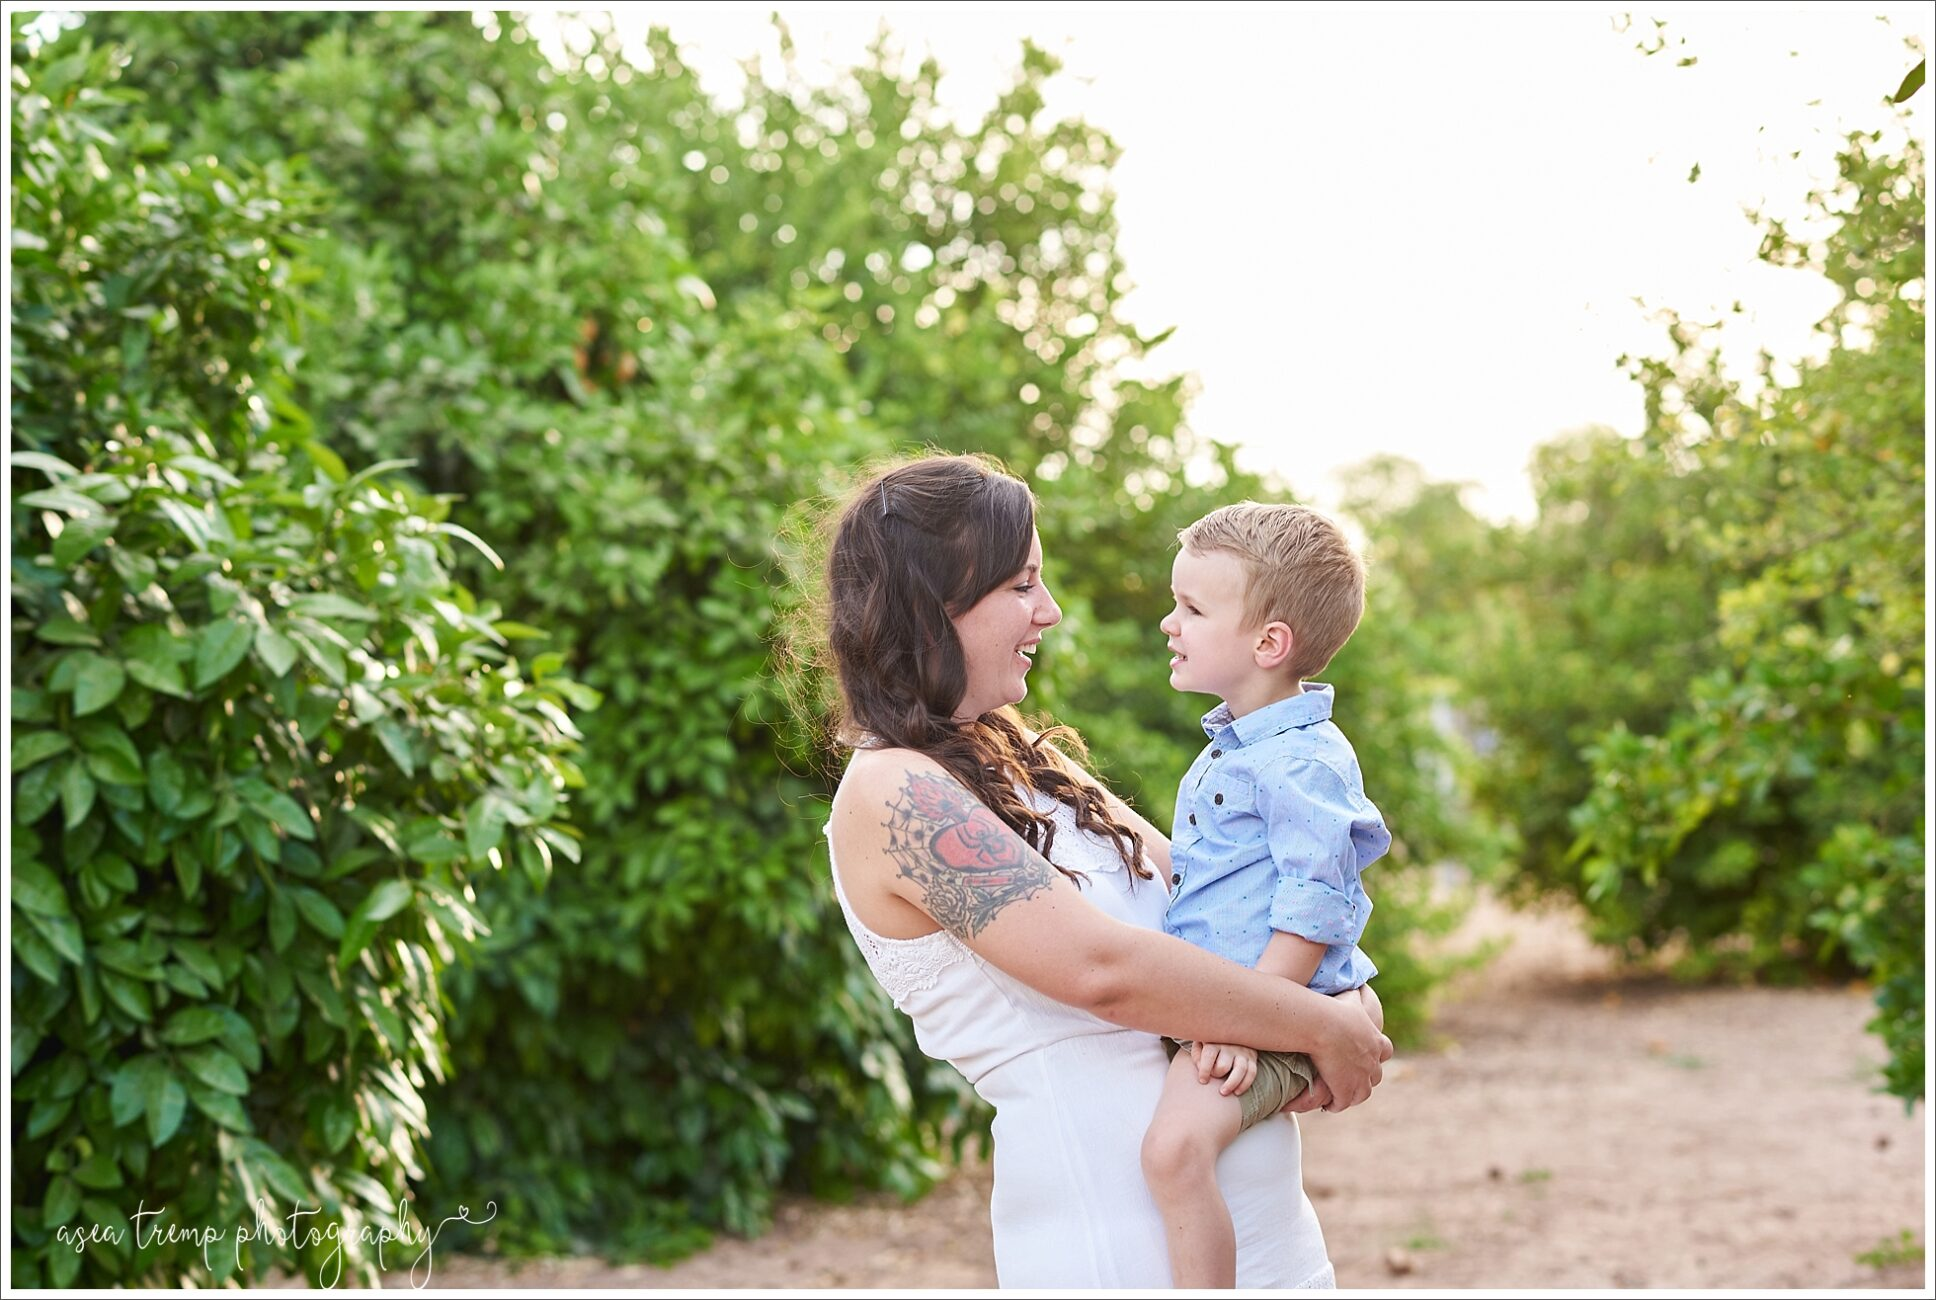 Tumbleweed Ranch Chandler Family Photos 050618 Asea Tremp Photography